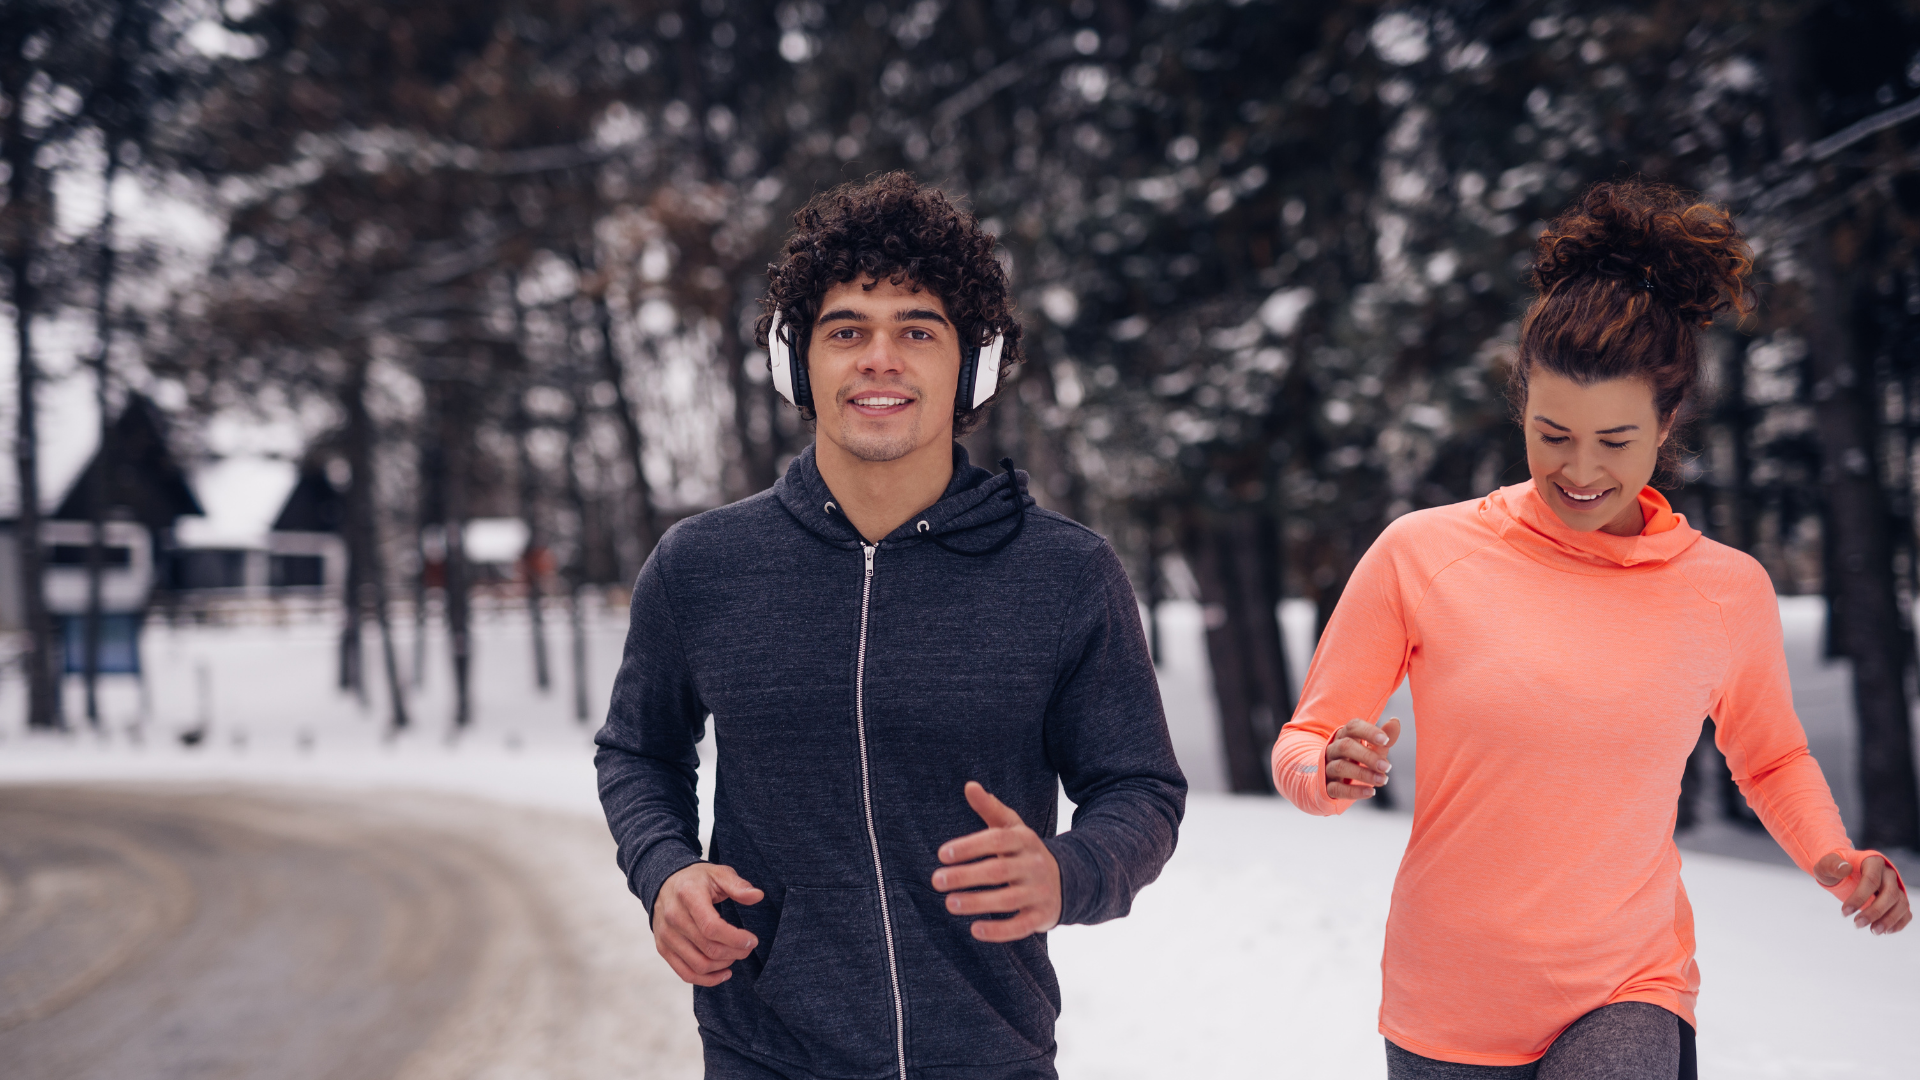 Can Exercise Help with Seasonal Affective Disorder?